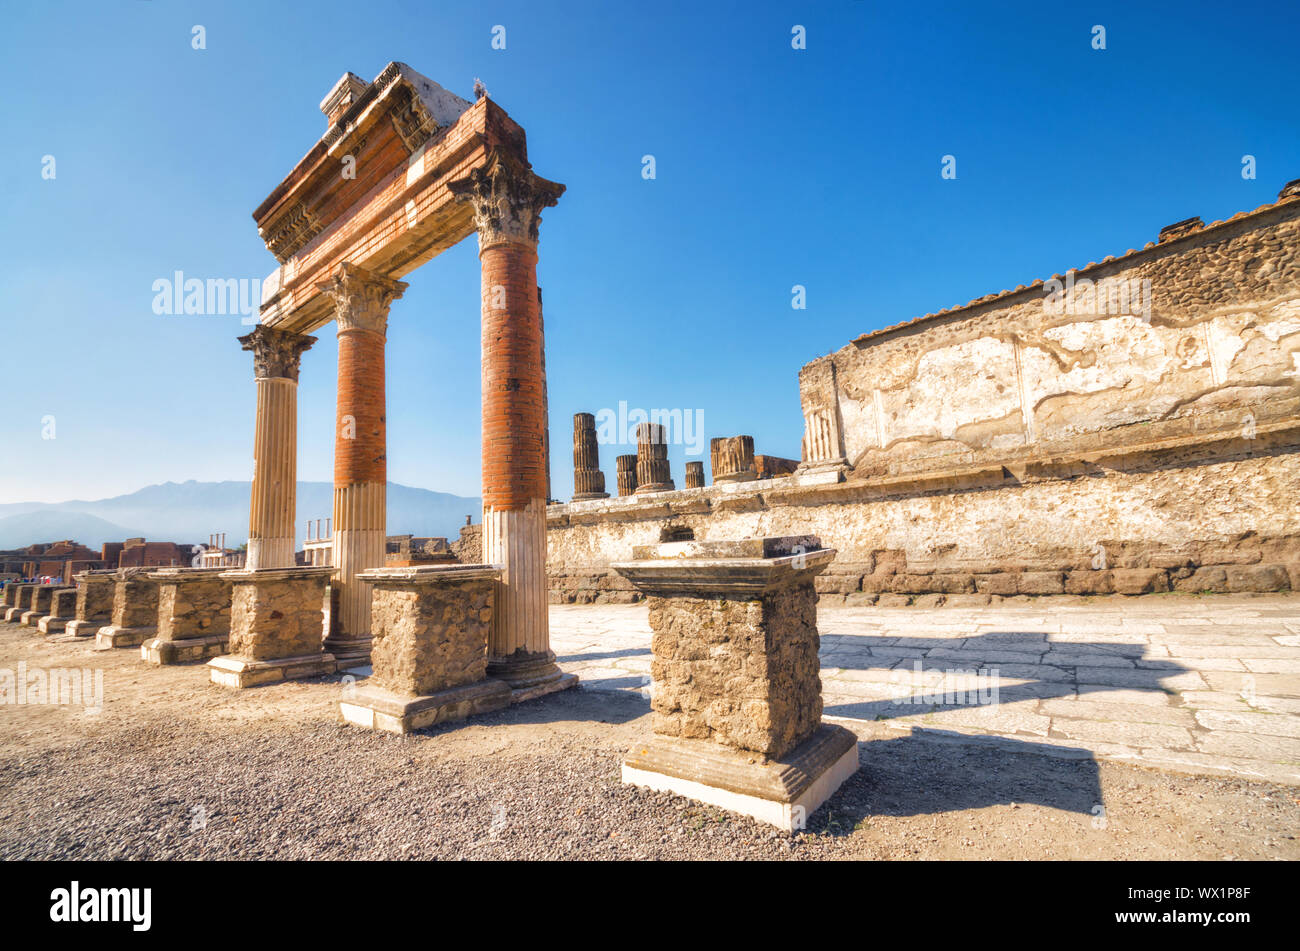 Ruins of the ancient roman city of Pompeii, which was destroyed by volcano, Mount Vesuvius, about two millenniums ago, 79 AD Stock Photo